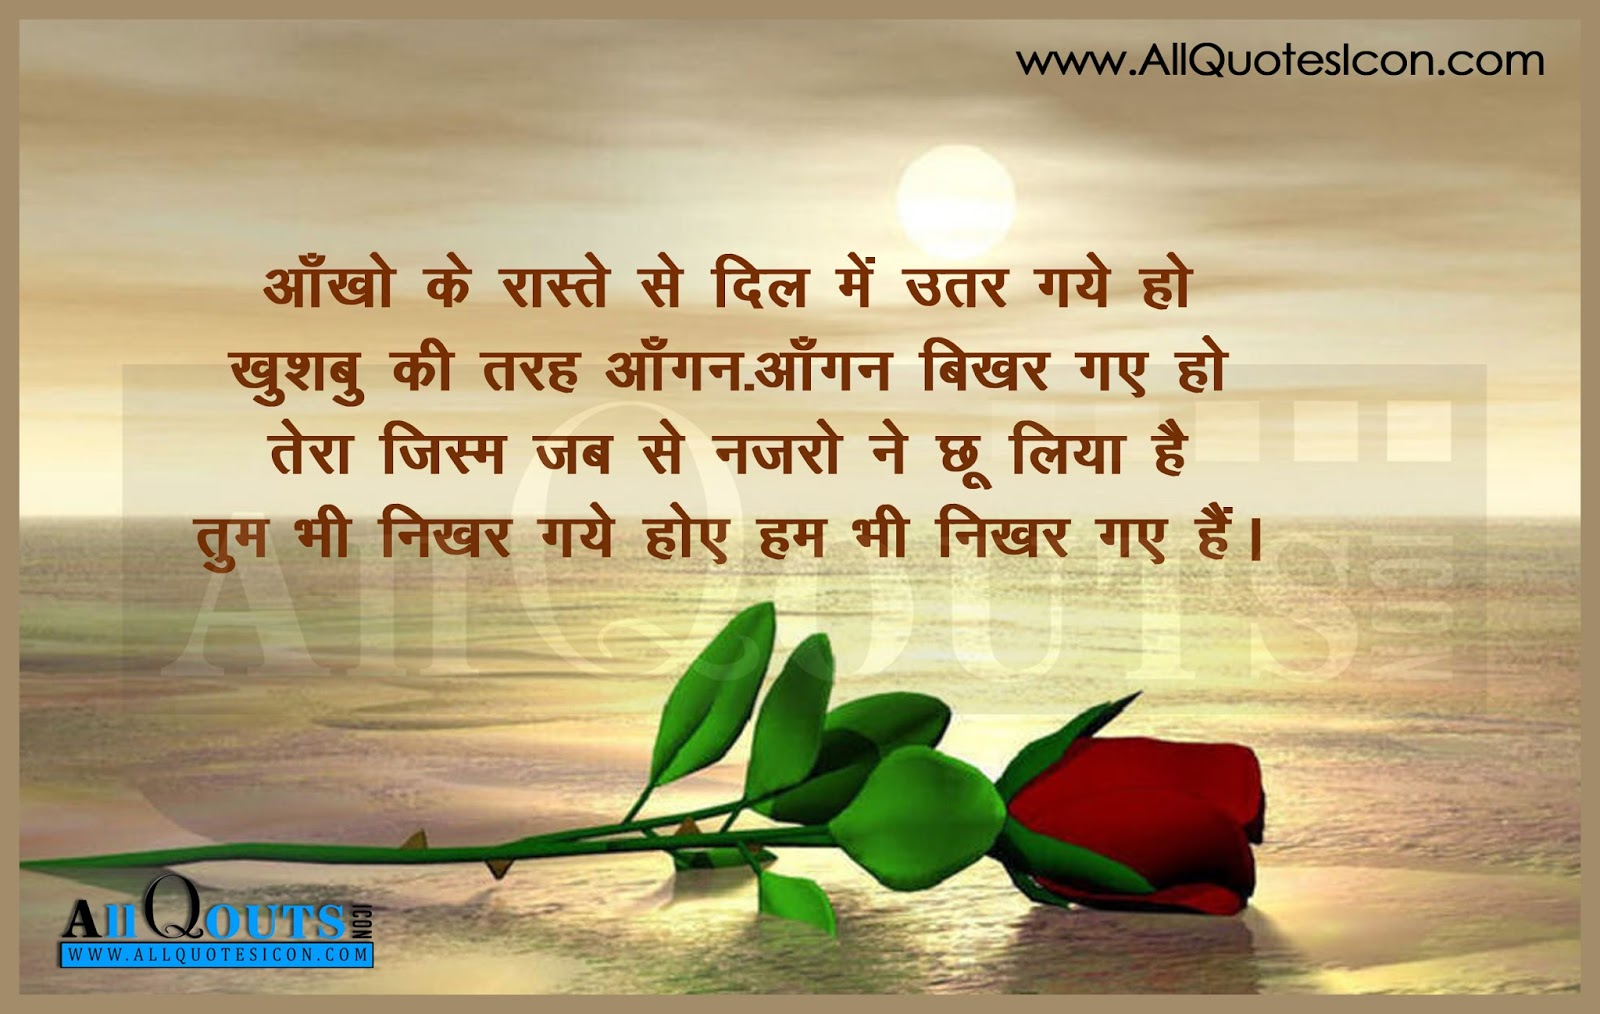 9 hindi love quotes and thoughts best hindi love quotes top hindi love